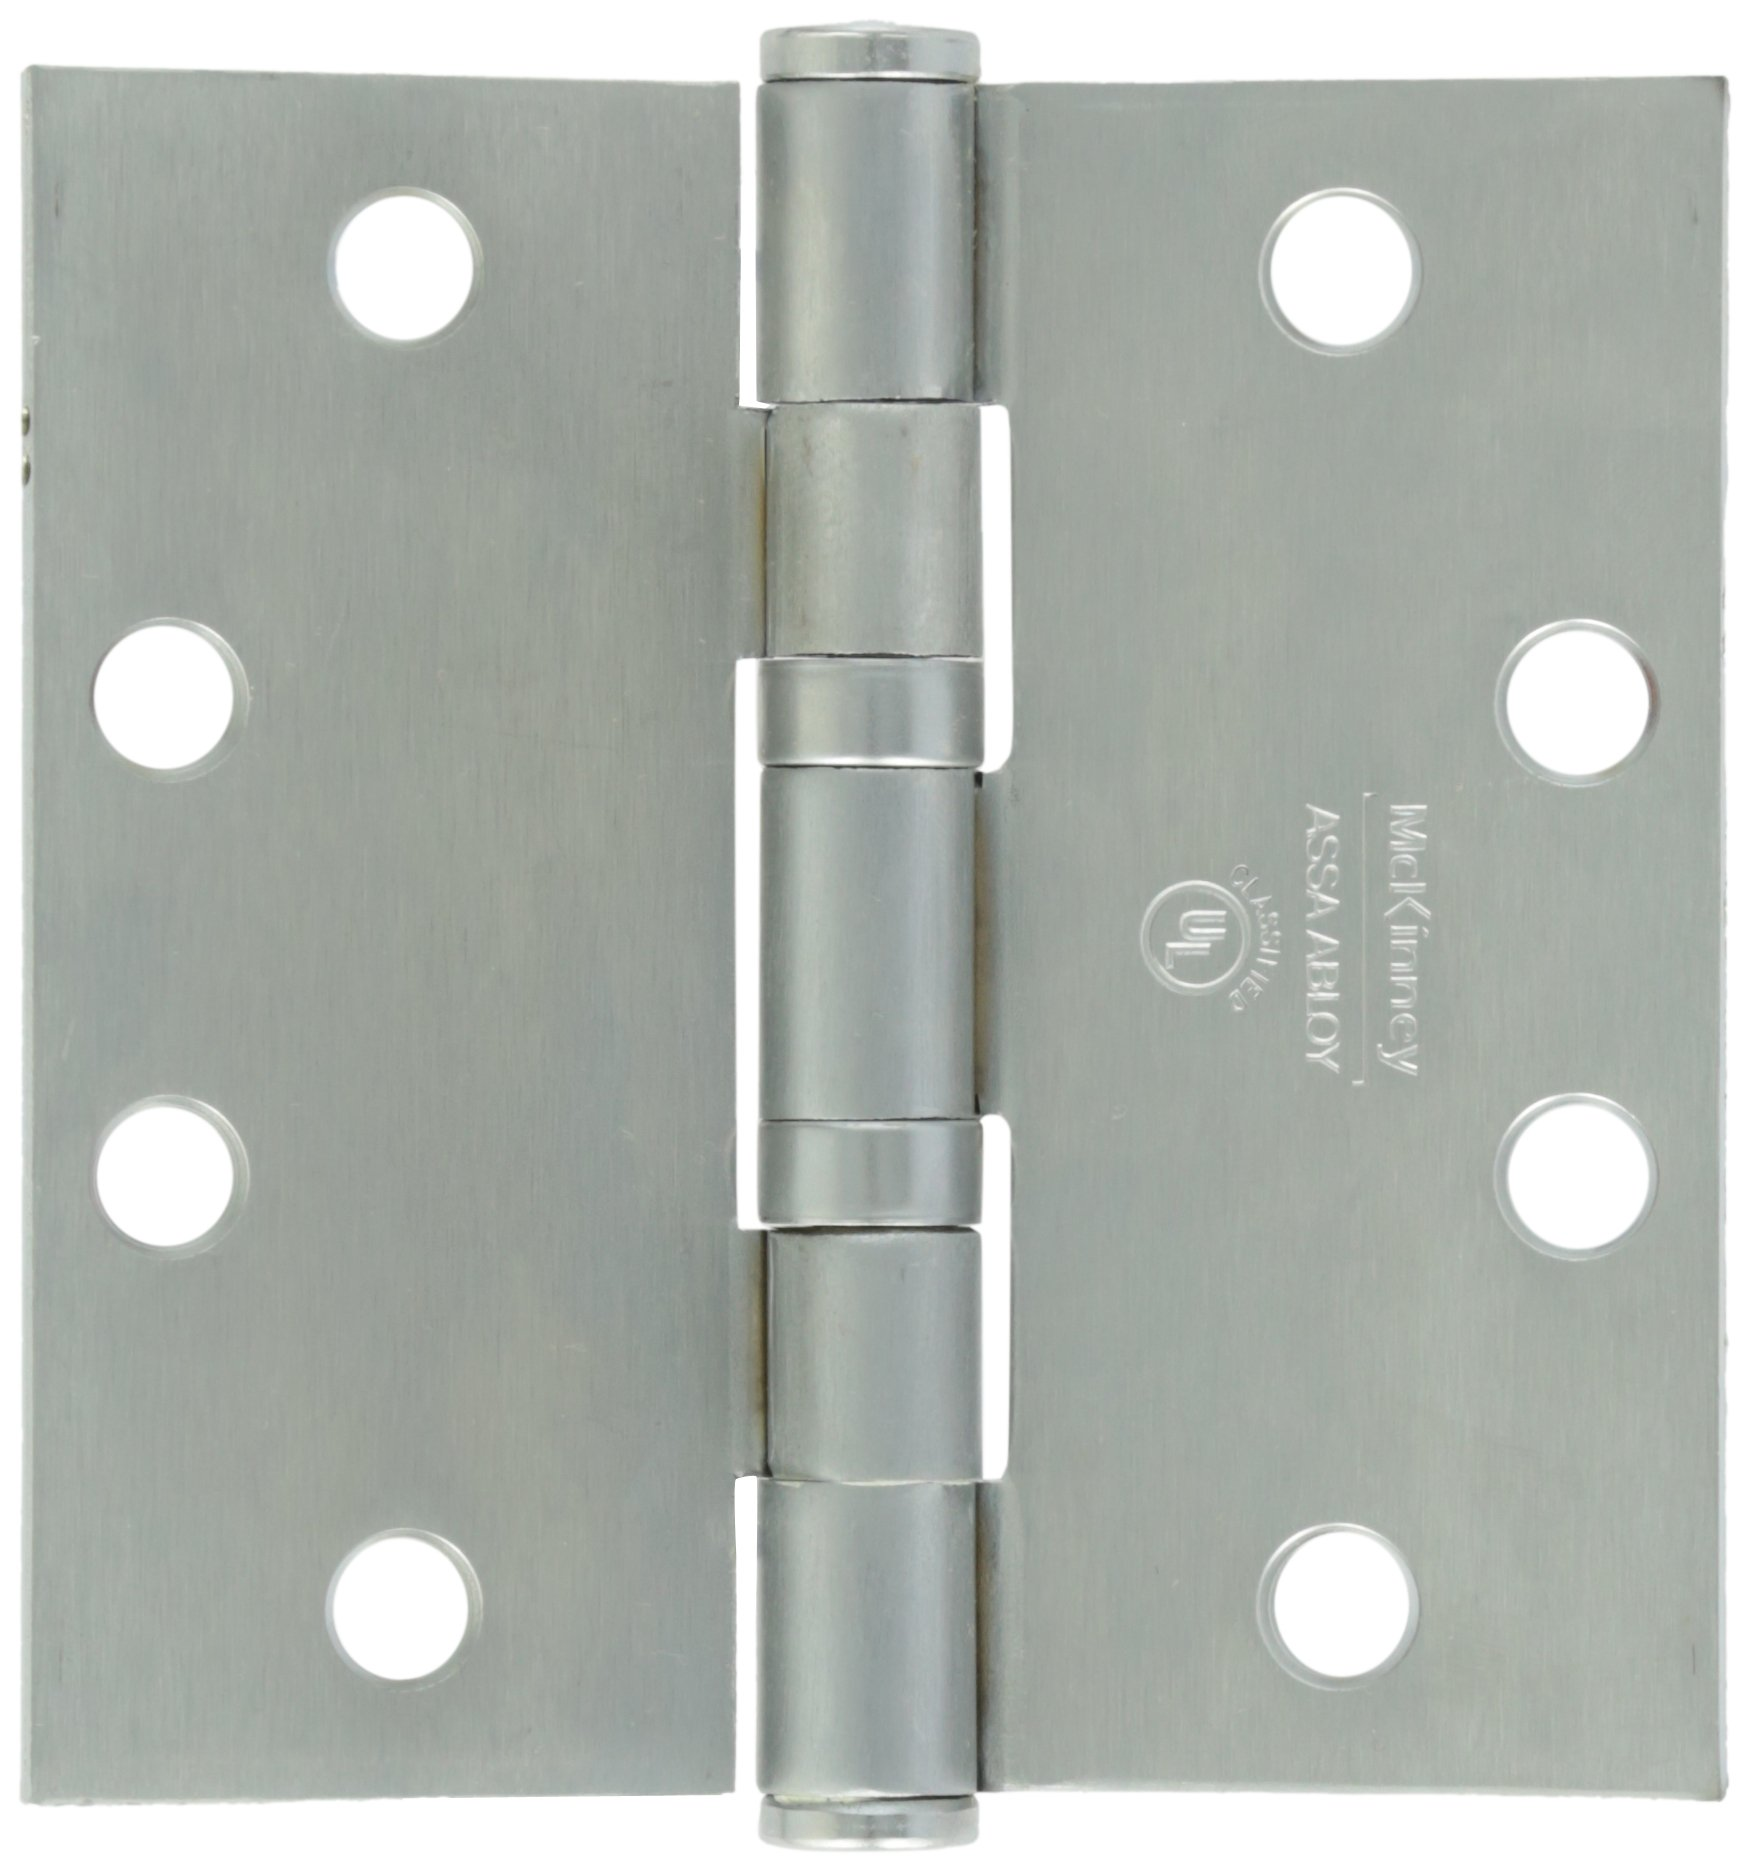 Securitron EH-45 Electrified Hinge, Stainless, 6 Wire, 4.5'' x 4.5''